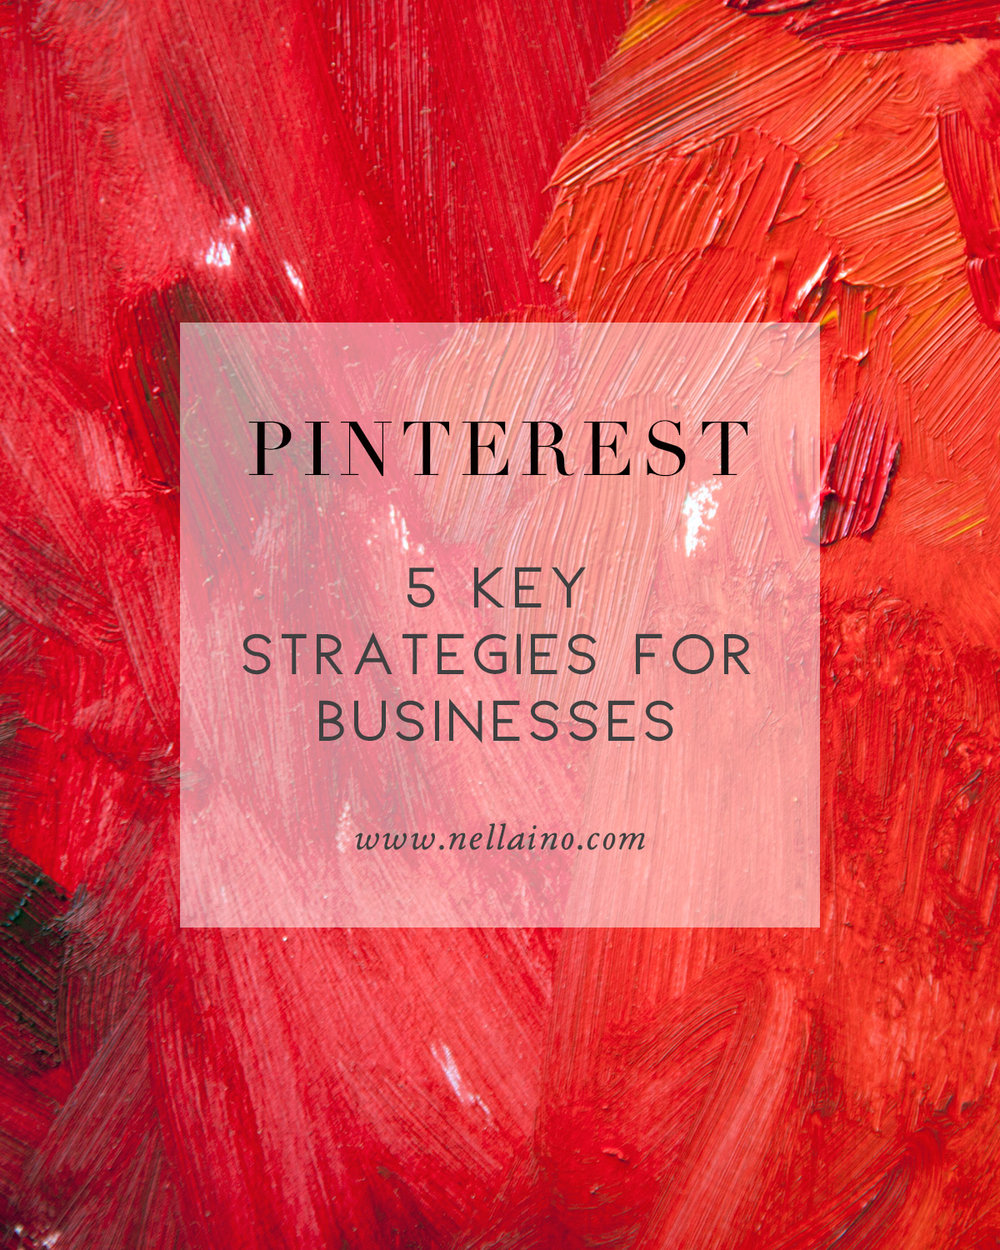 5-Key-Pinterest-Strategies-for-businesses.jpg